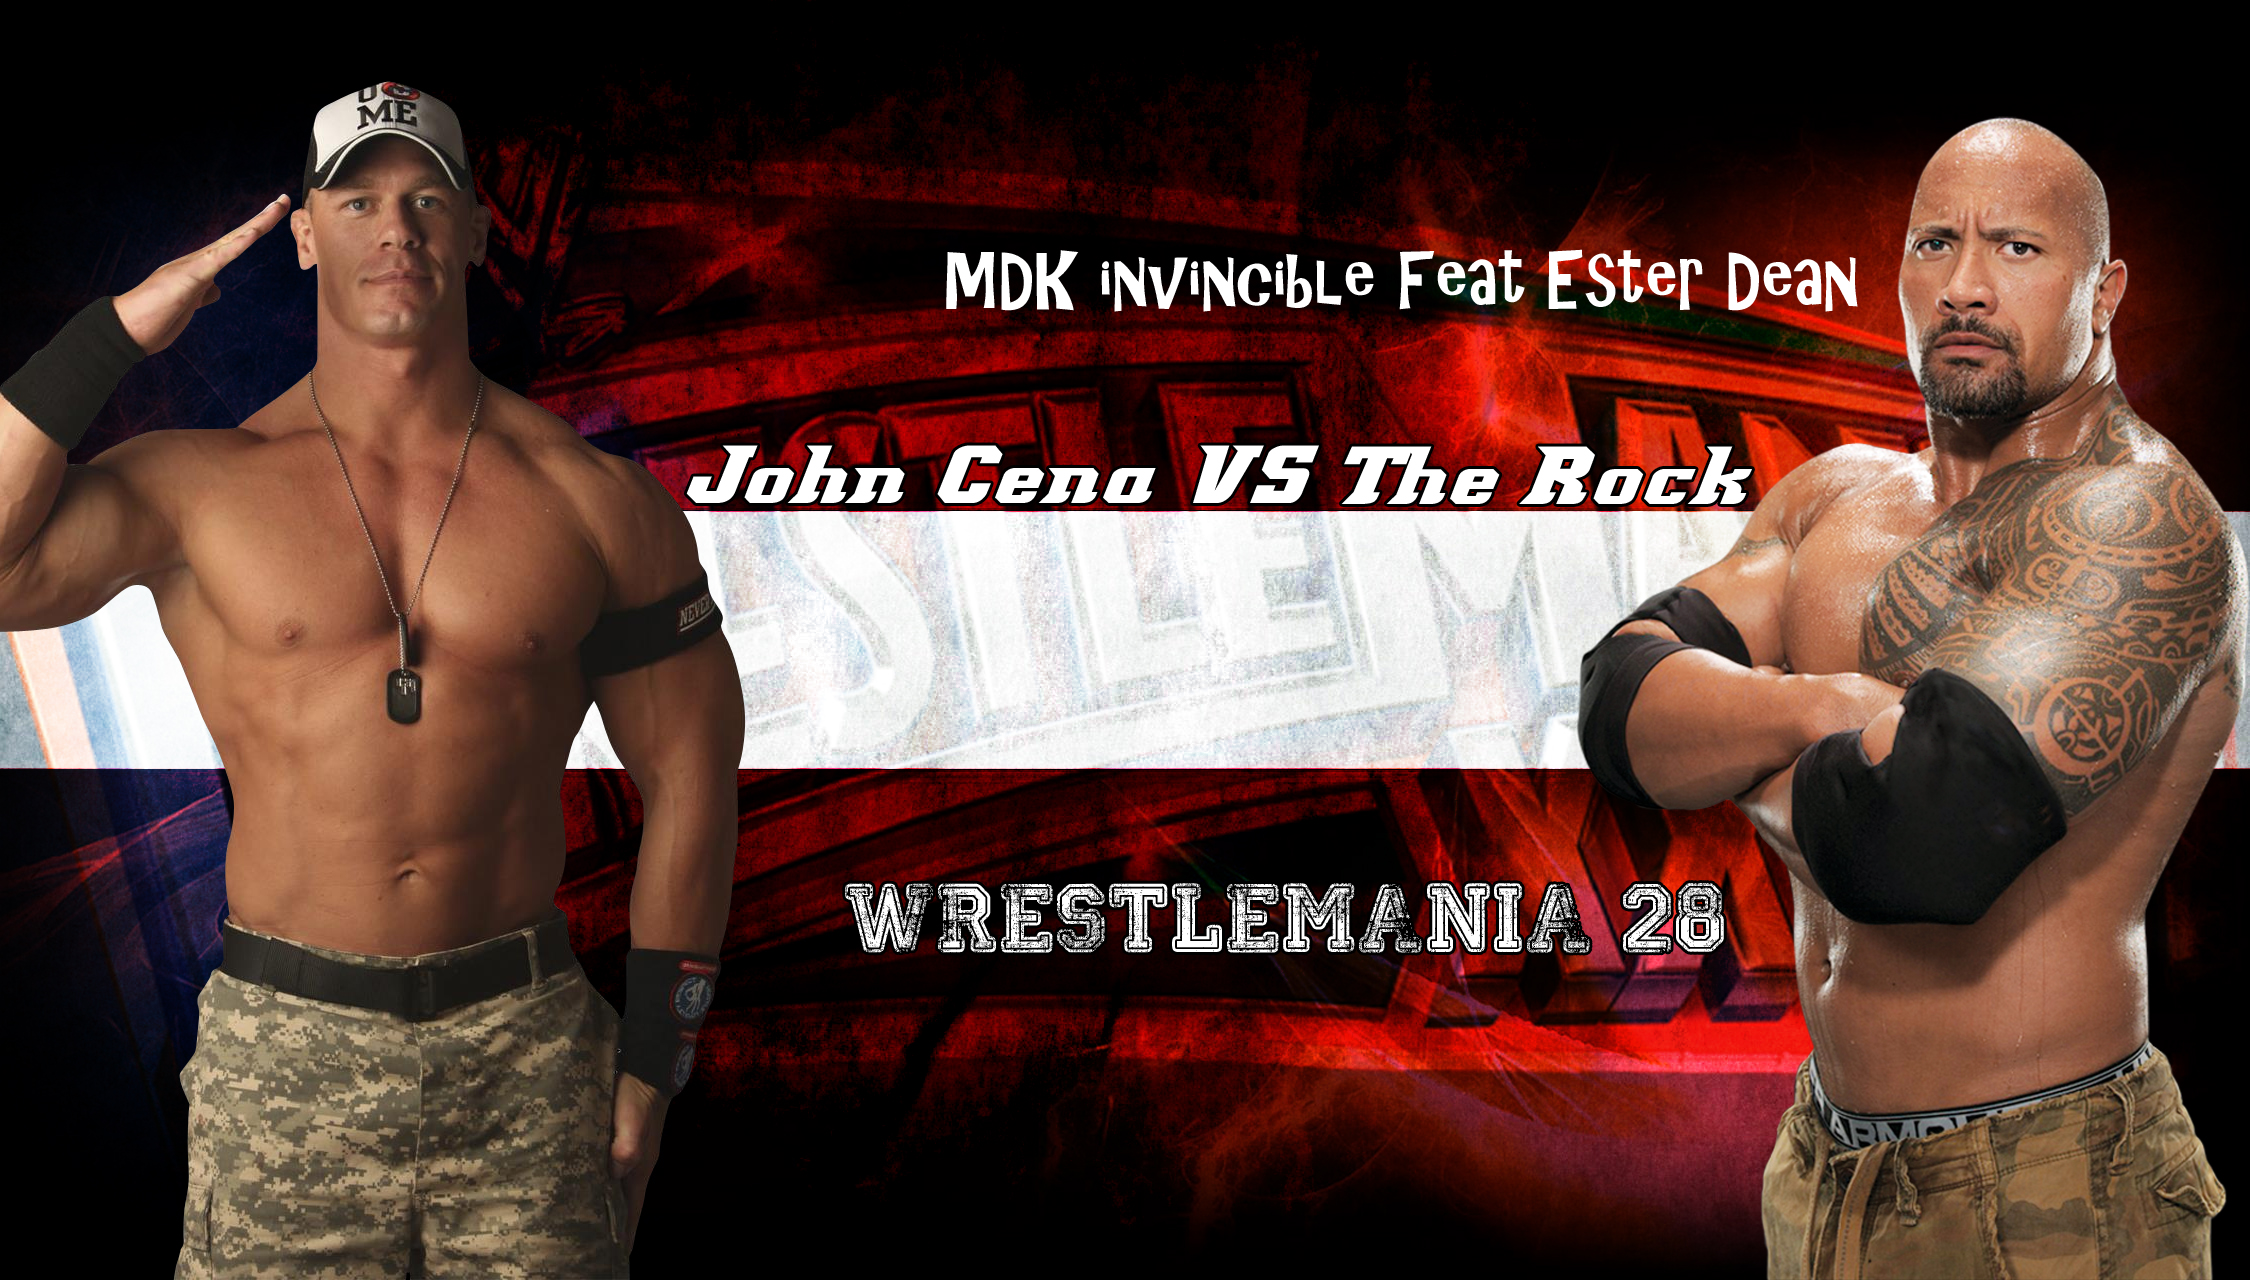 WWE Wrestlemania 28 John Cena vs The Rock  V55cgqwd8av7vfybisdg